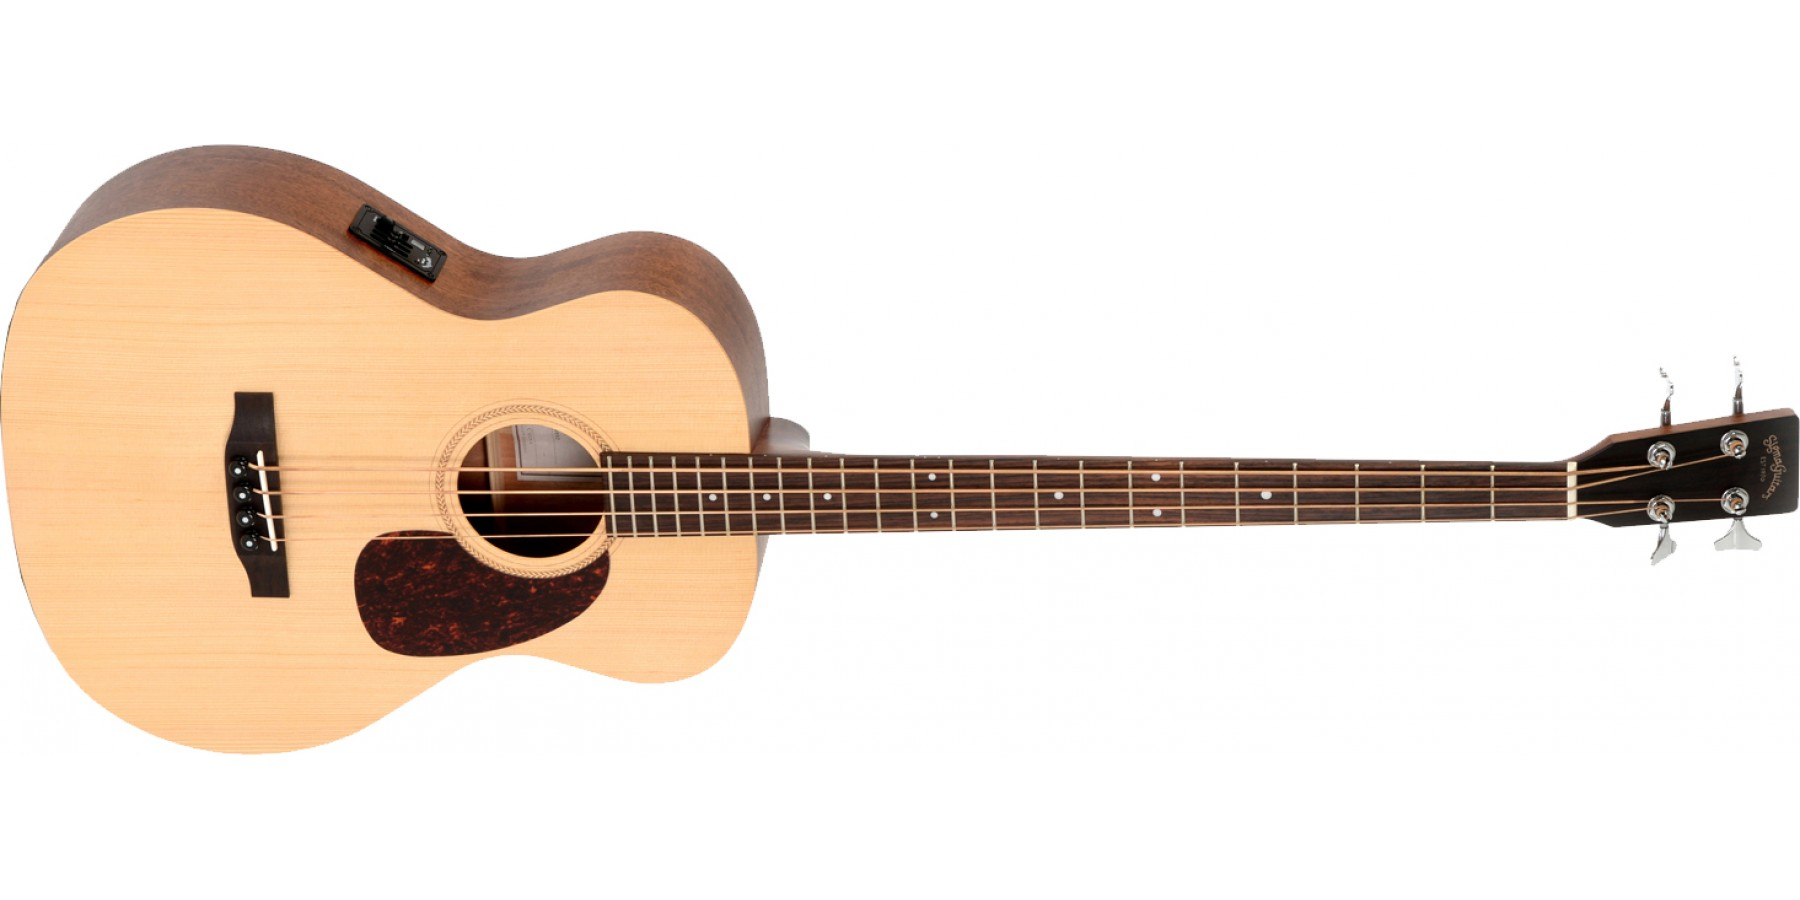 BME Solid Top Acoustic Bgtr: Bass Guitar